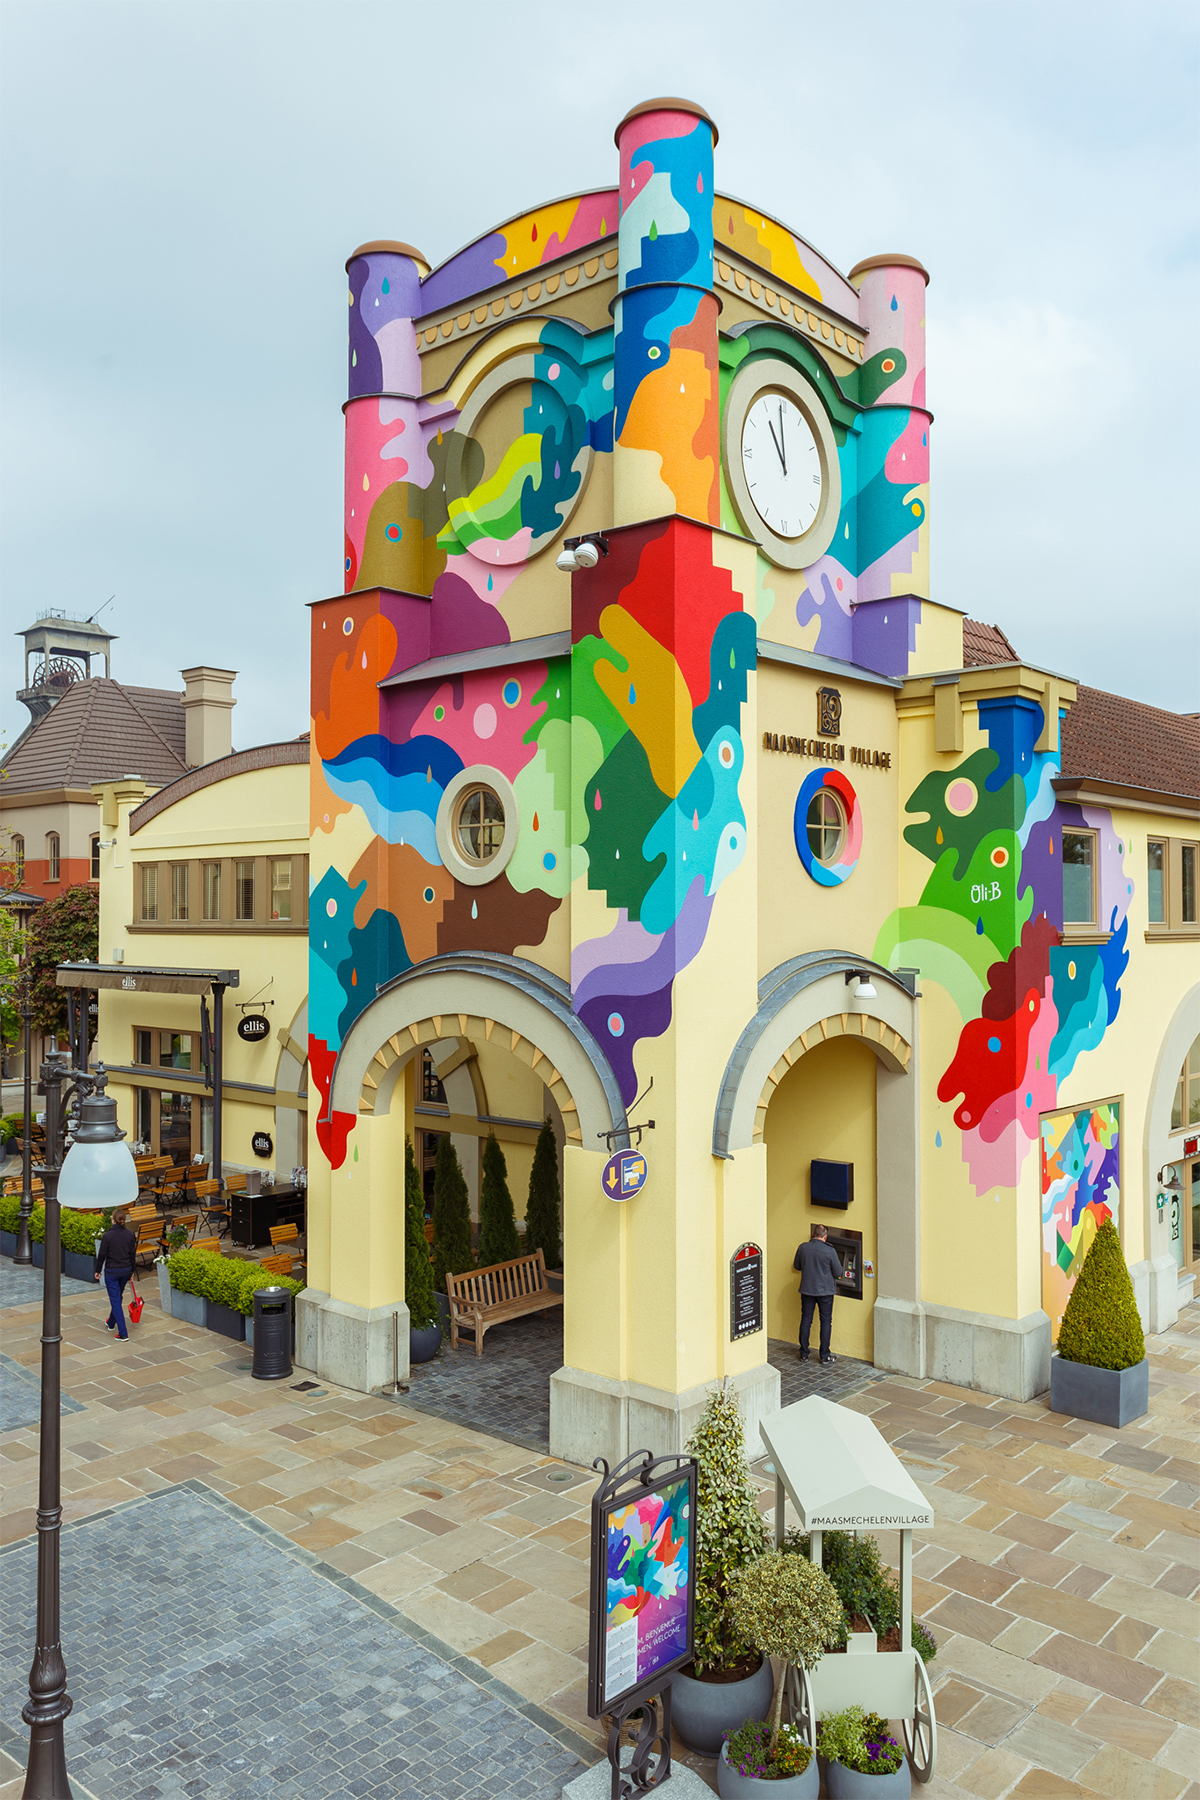 Interlocking Pools of Color Swirl Across Building Facades in Bright Murals by Oli-B | Colossal